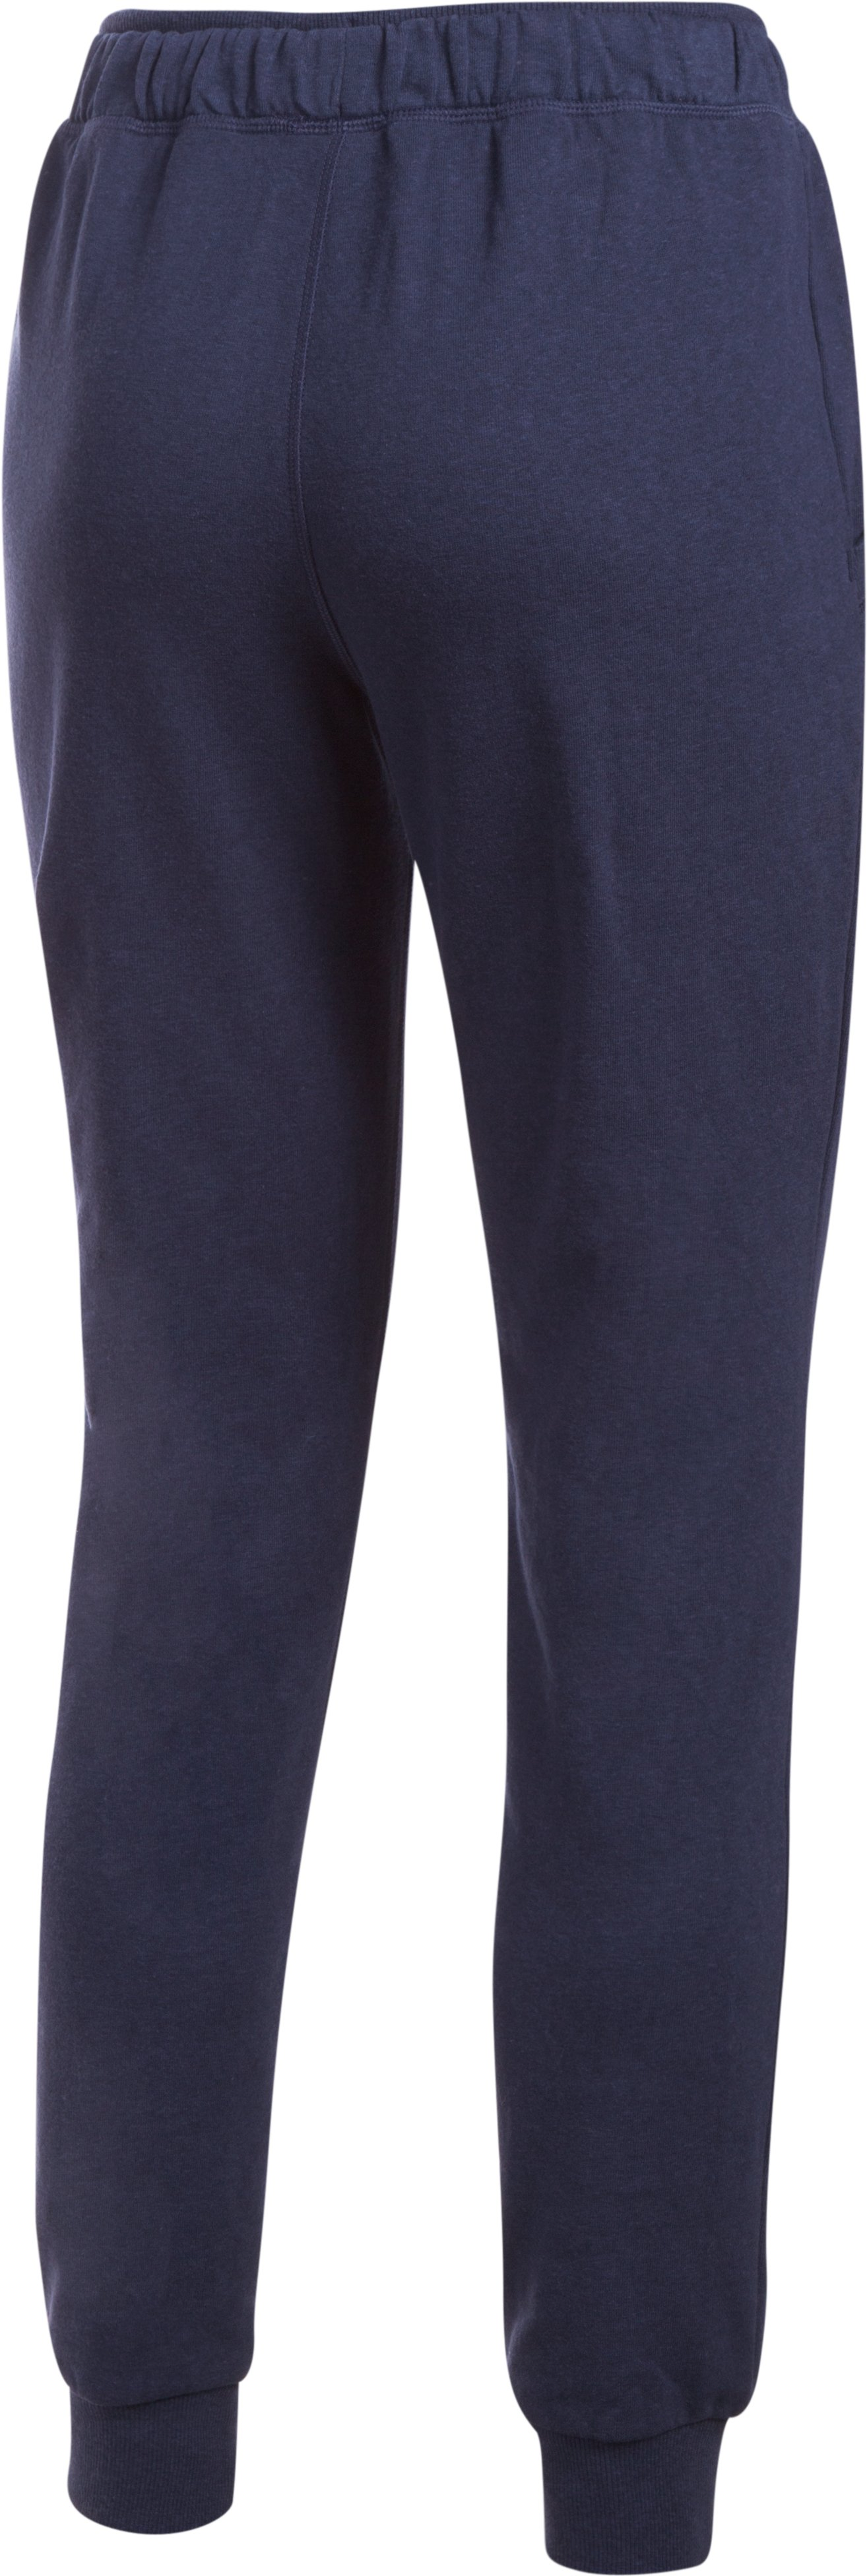 Women's Notre Dame UA Tri-Blend Pants, Midnight Navy,